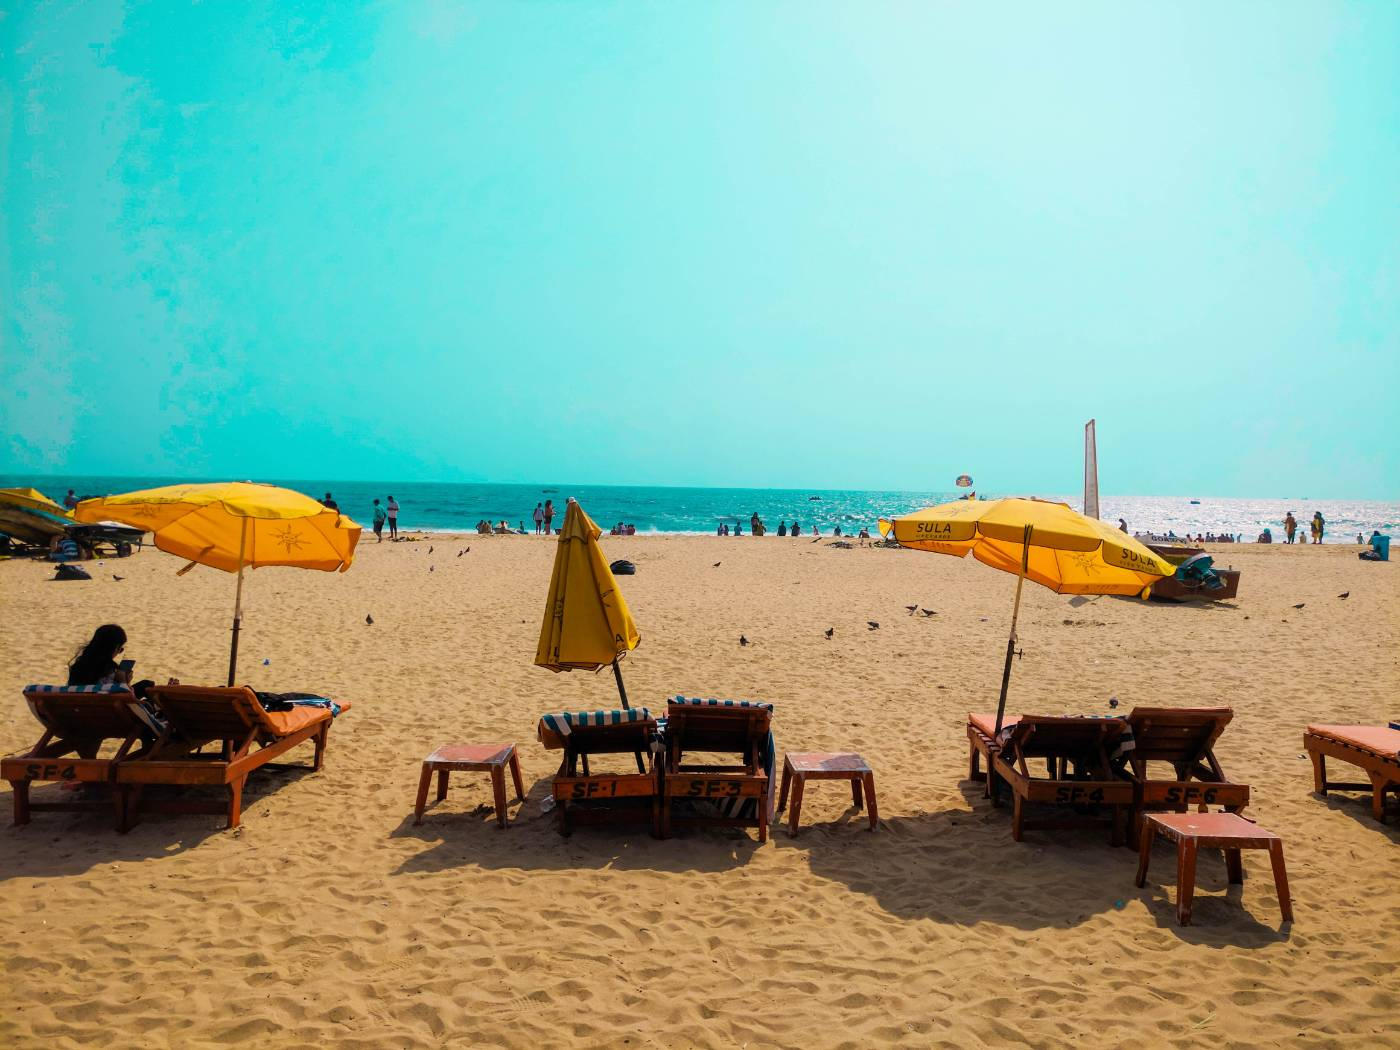 https://www.seasonzindia.com/india/goa-tour-packages